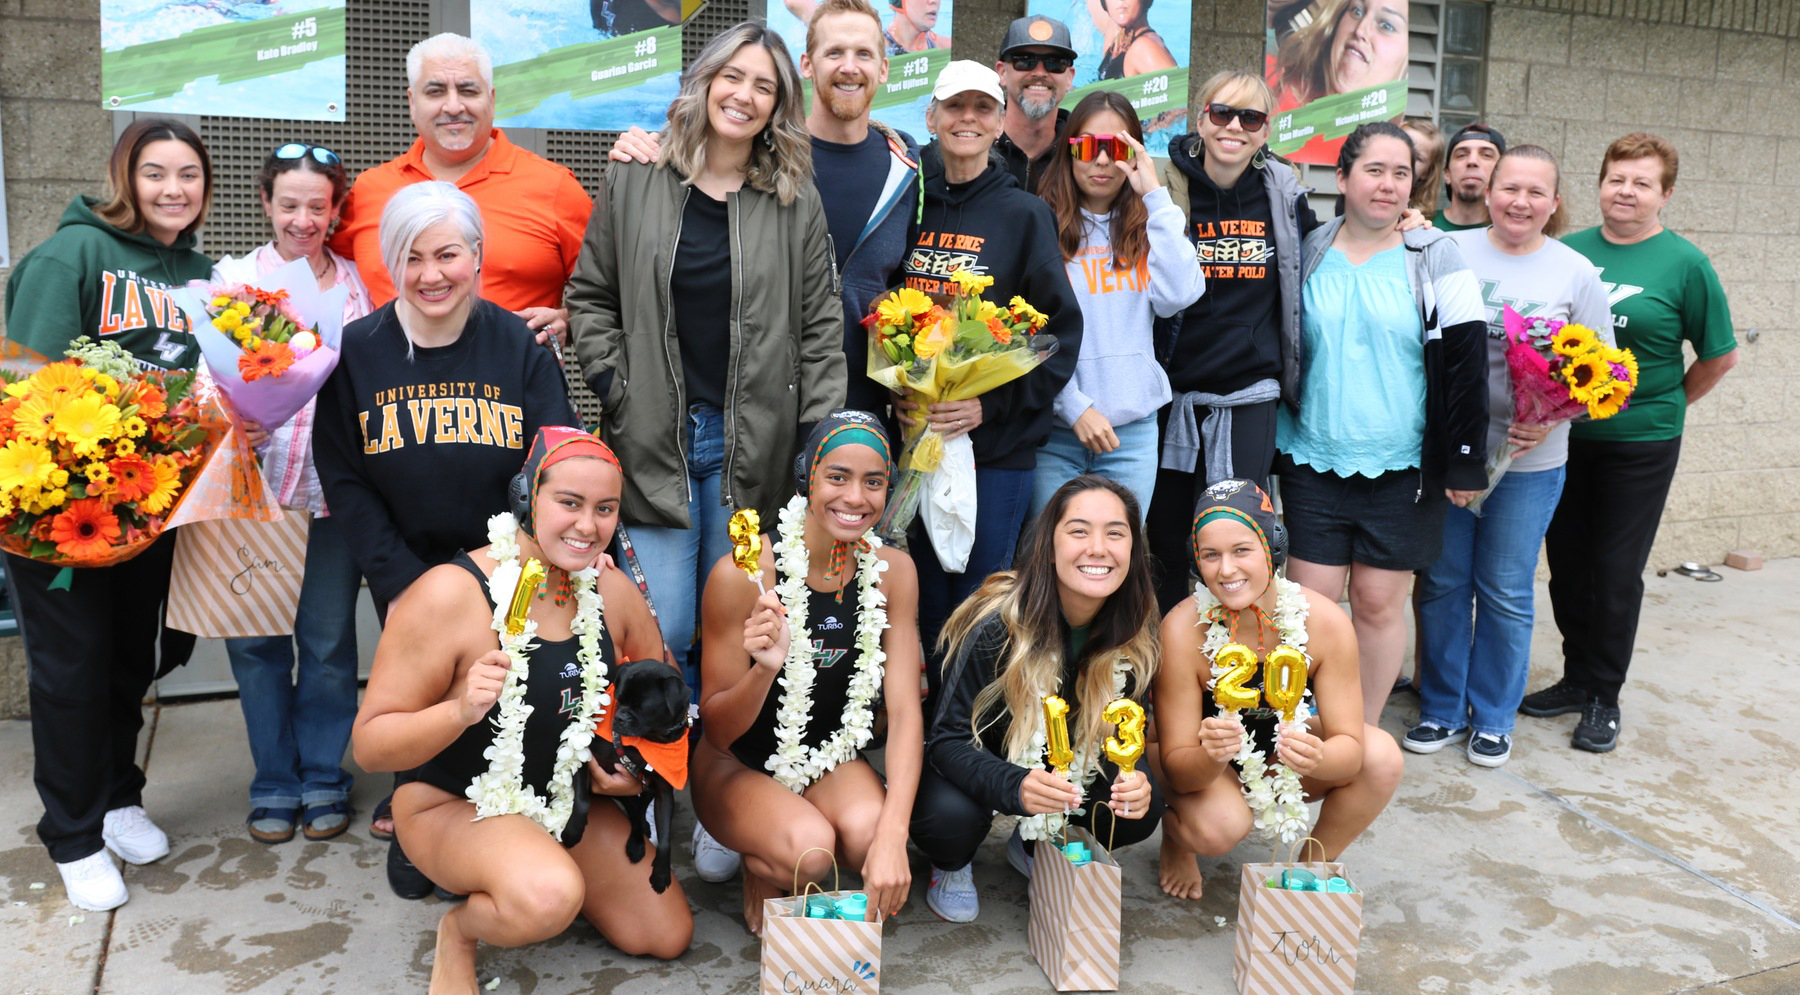 Leopards beat Oxy, claim No. 4 seed in SCIAC Tournament